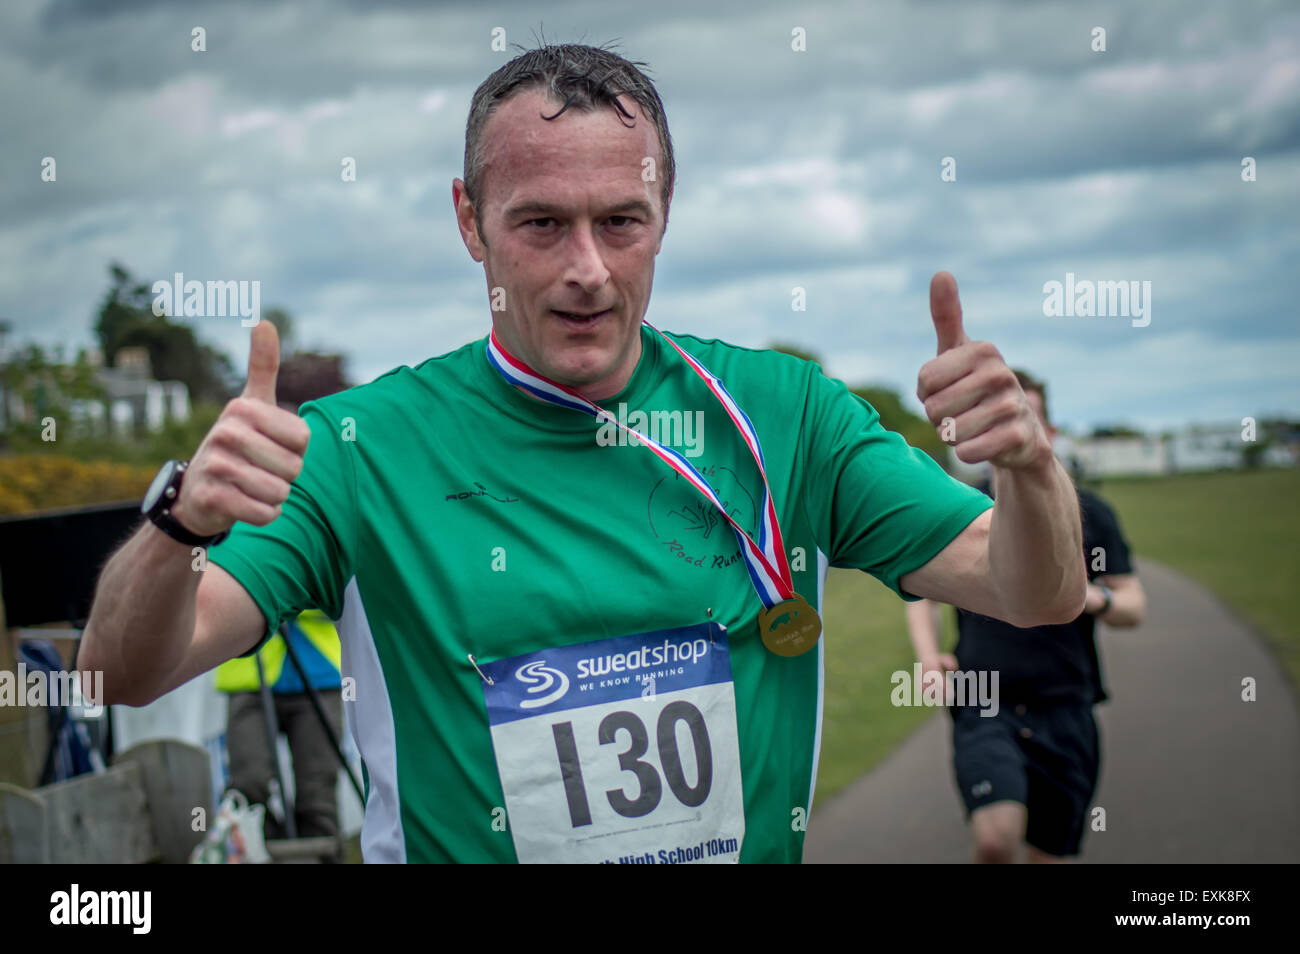 Male runner thumbs up on the finish line - Stock Image